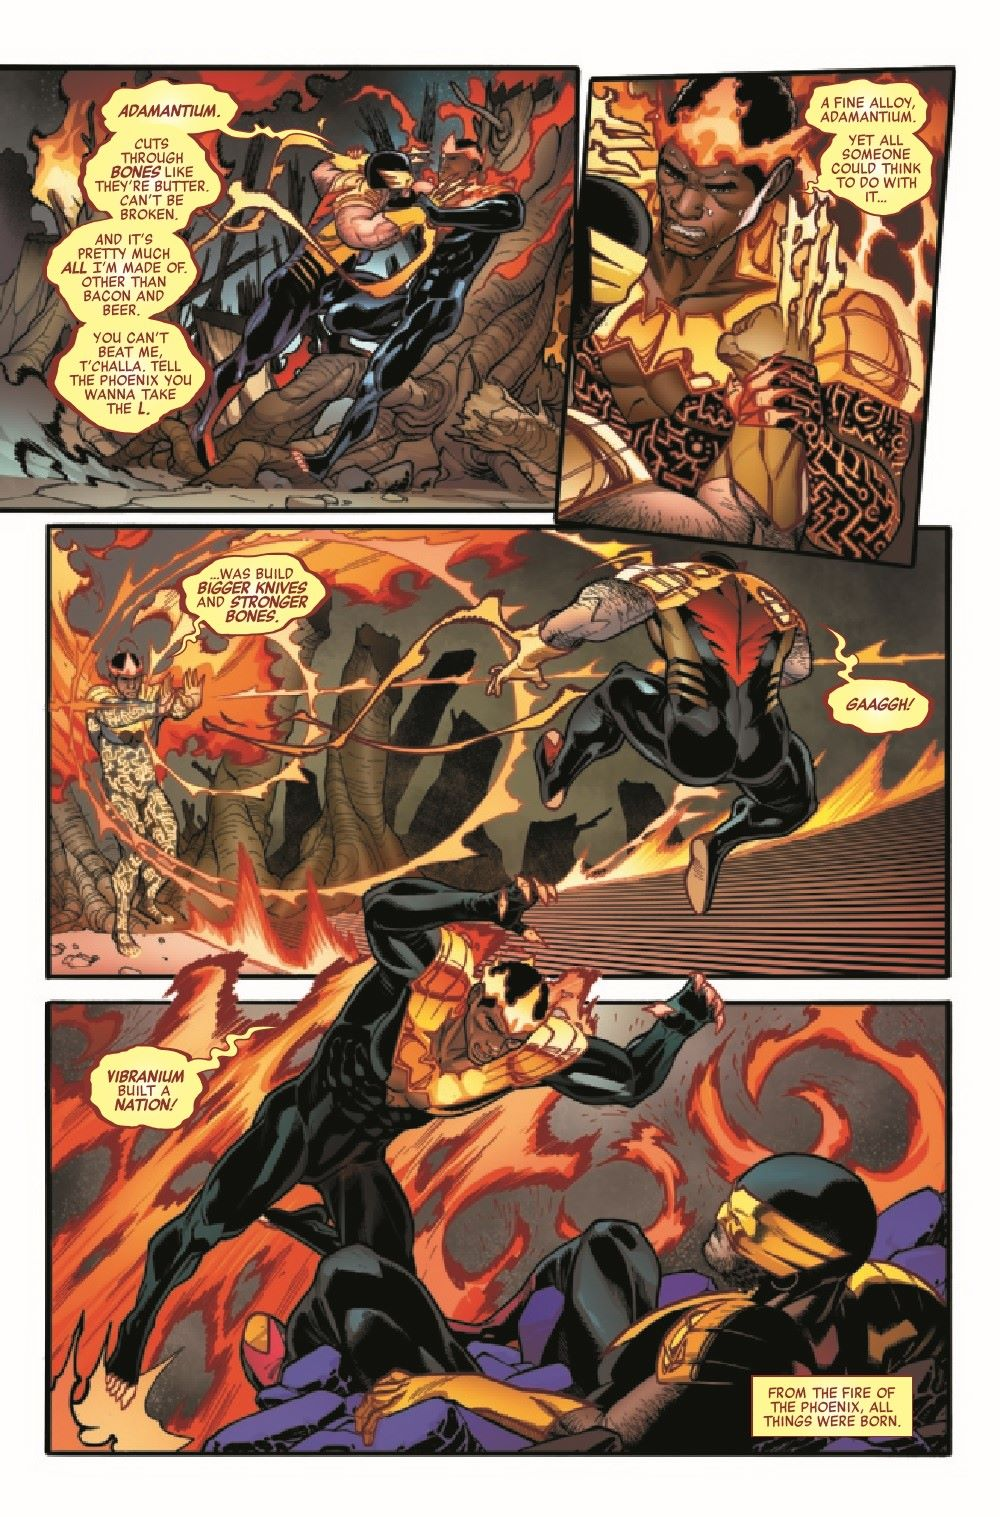 AVEN2018043_Preview-5 ComicList Previews: THE AVENGERS #43